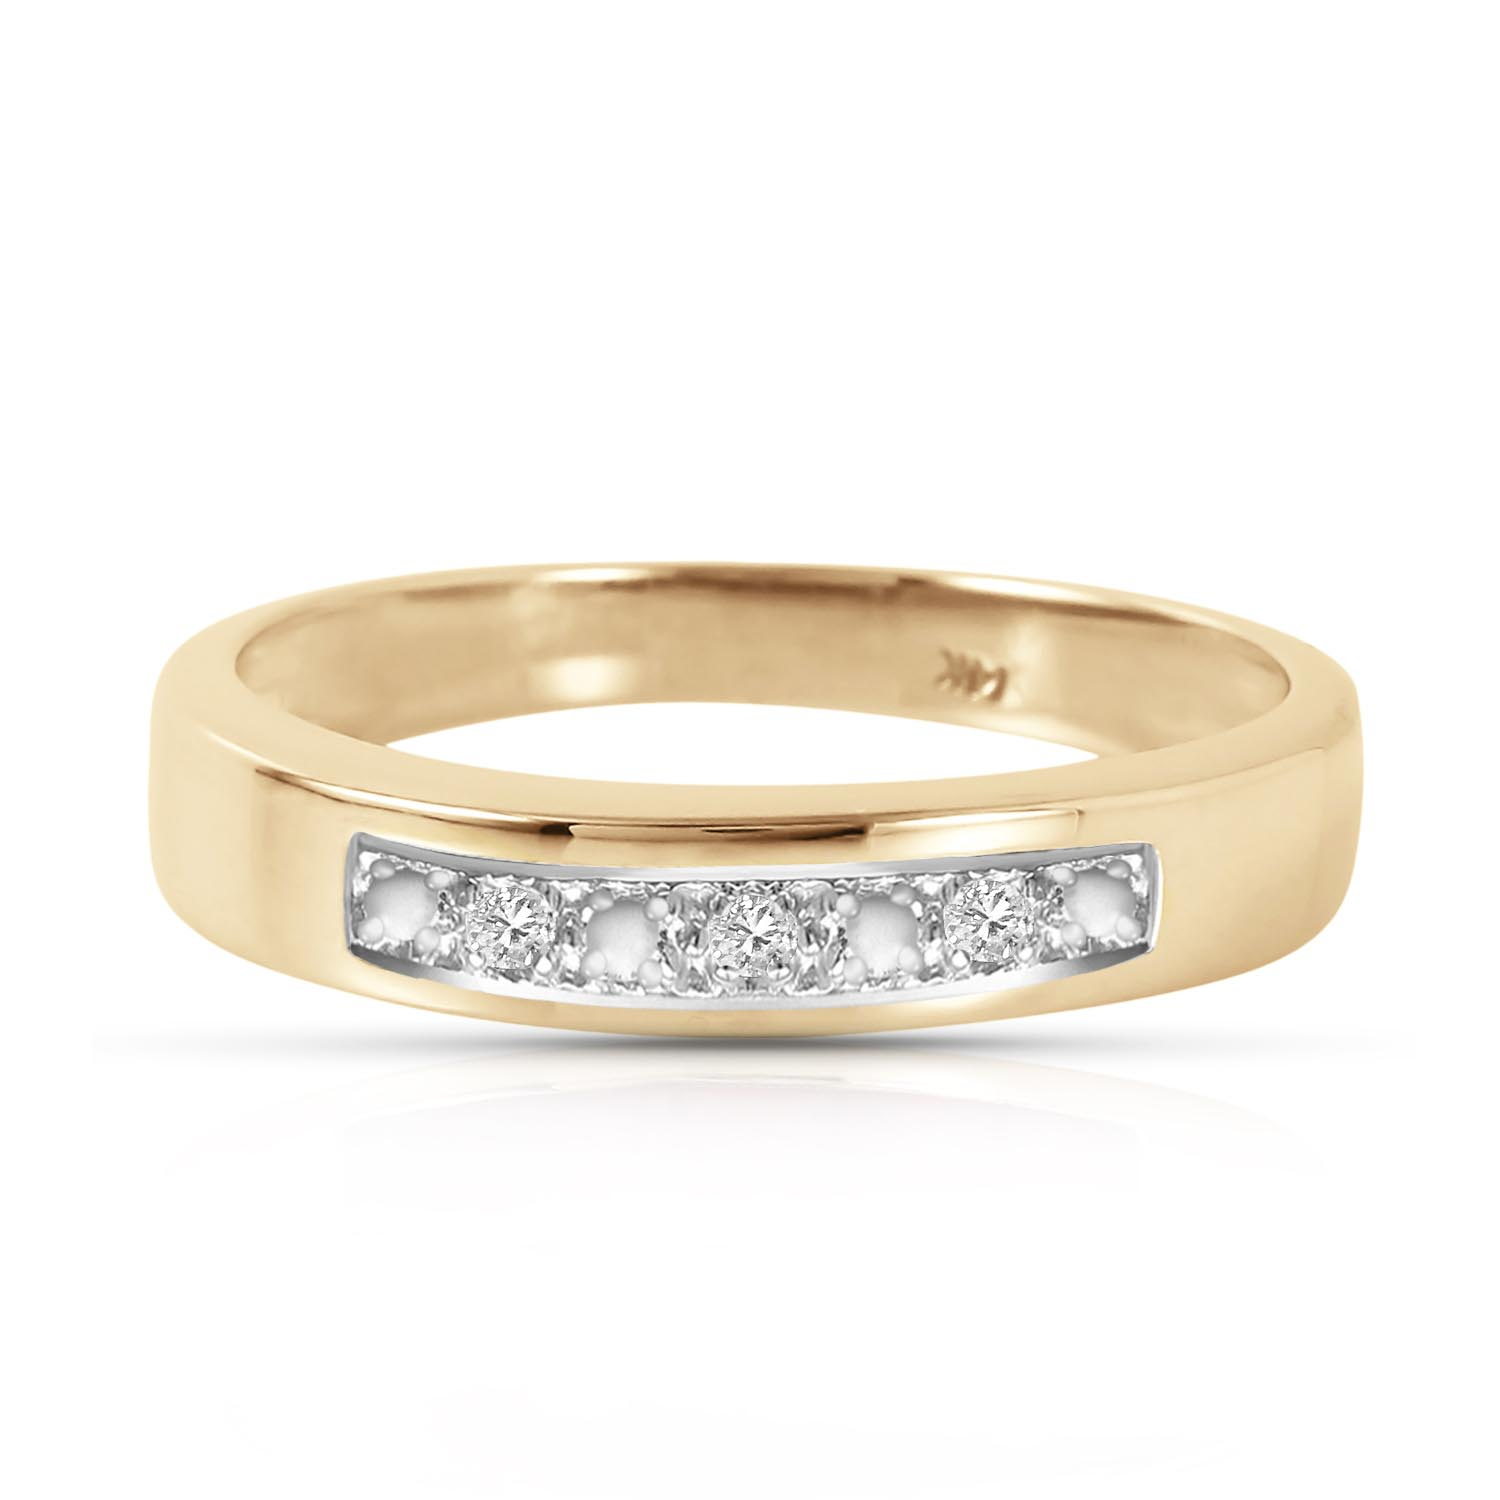 Round Cut Diamond Ring 0.02 ctw in 9ct Gold